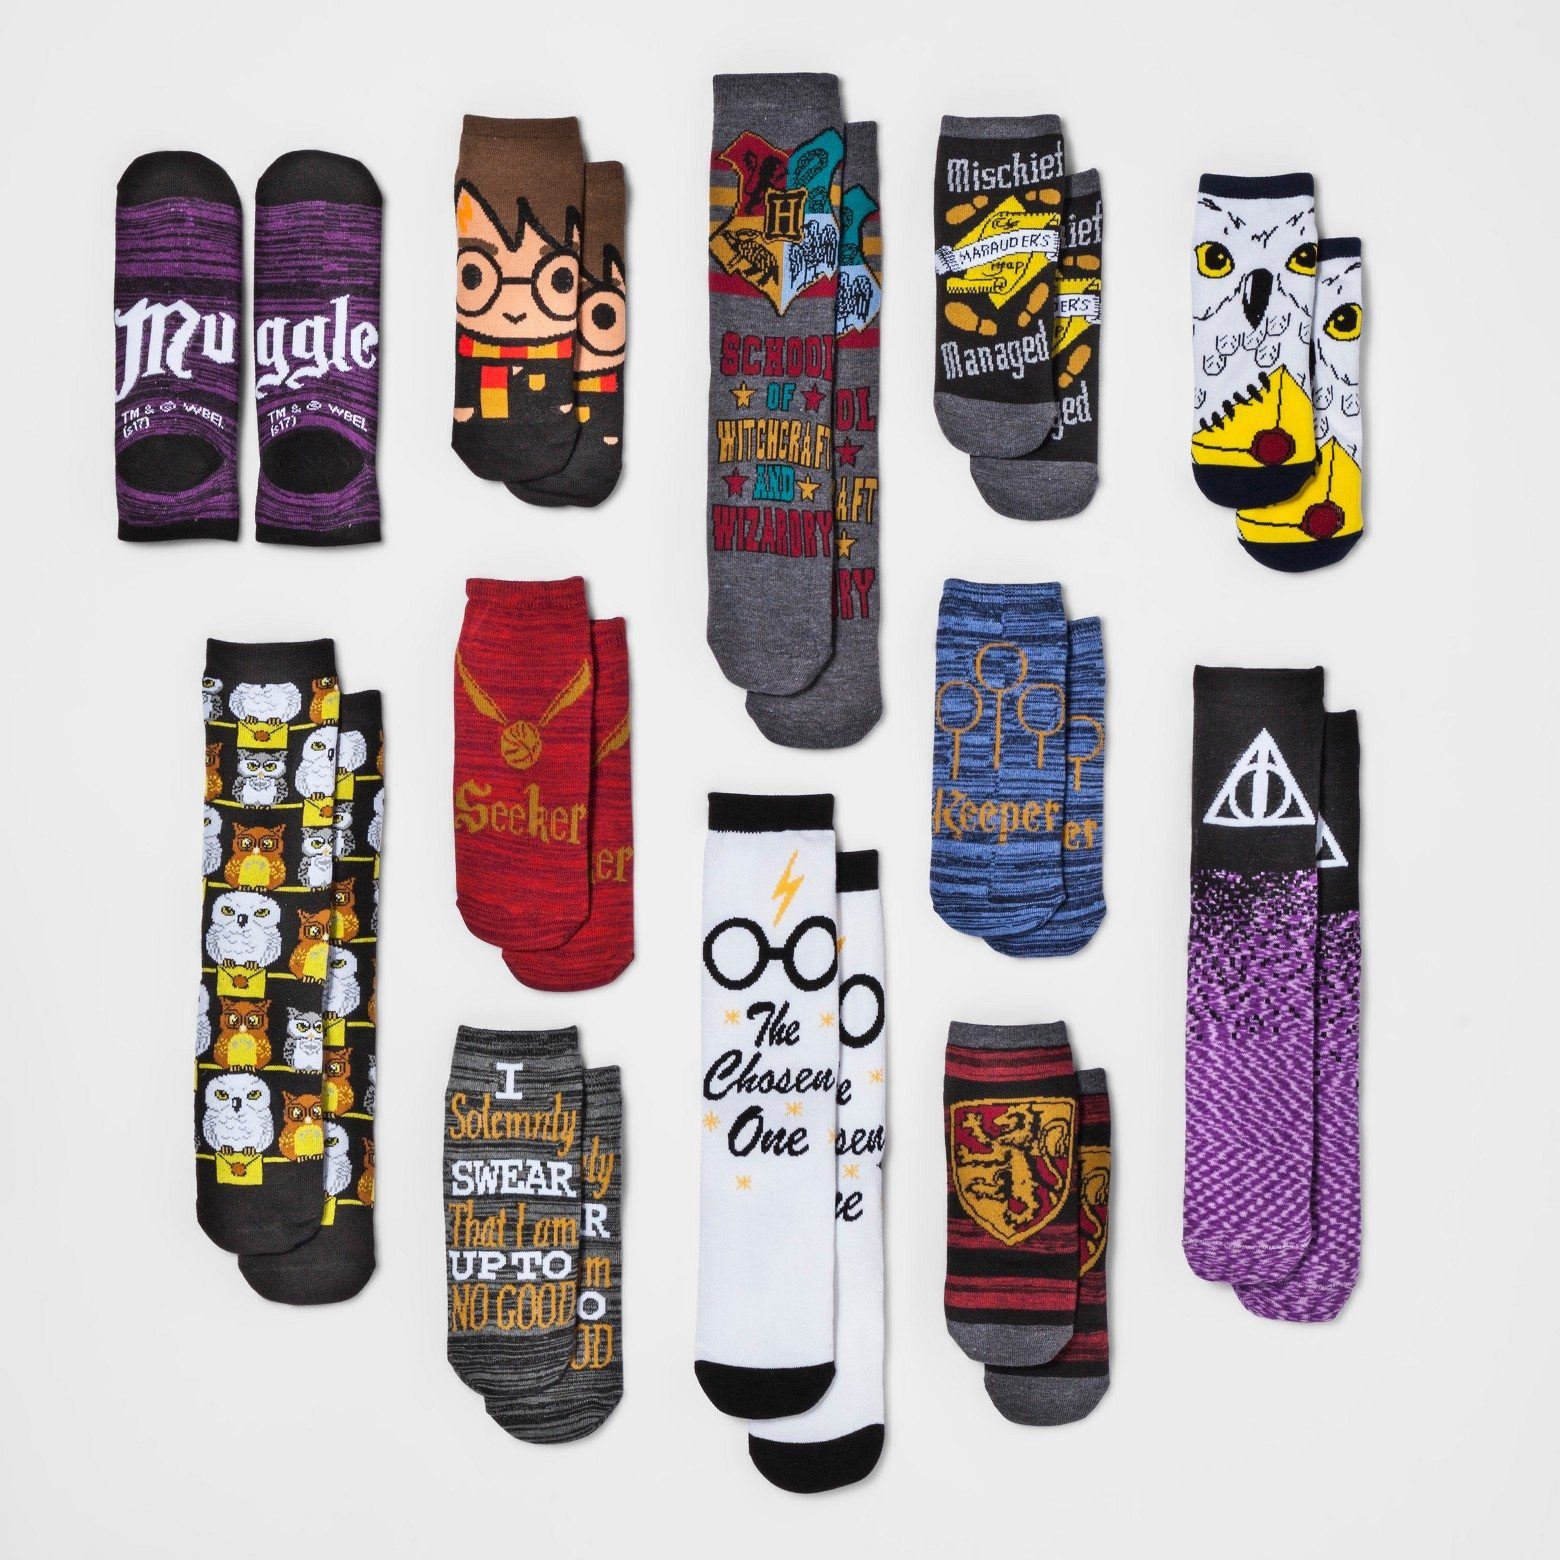 Target Celebrates The 12 Days Of Christmas With Geeky Socks